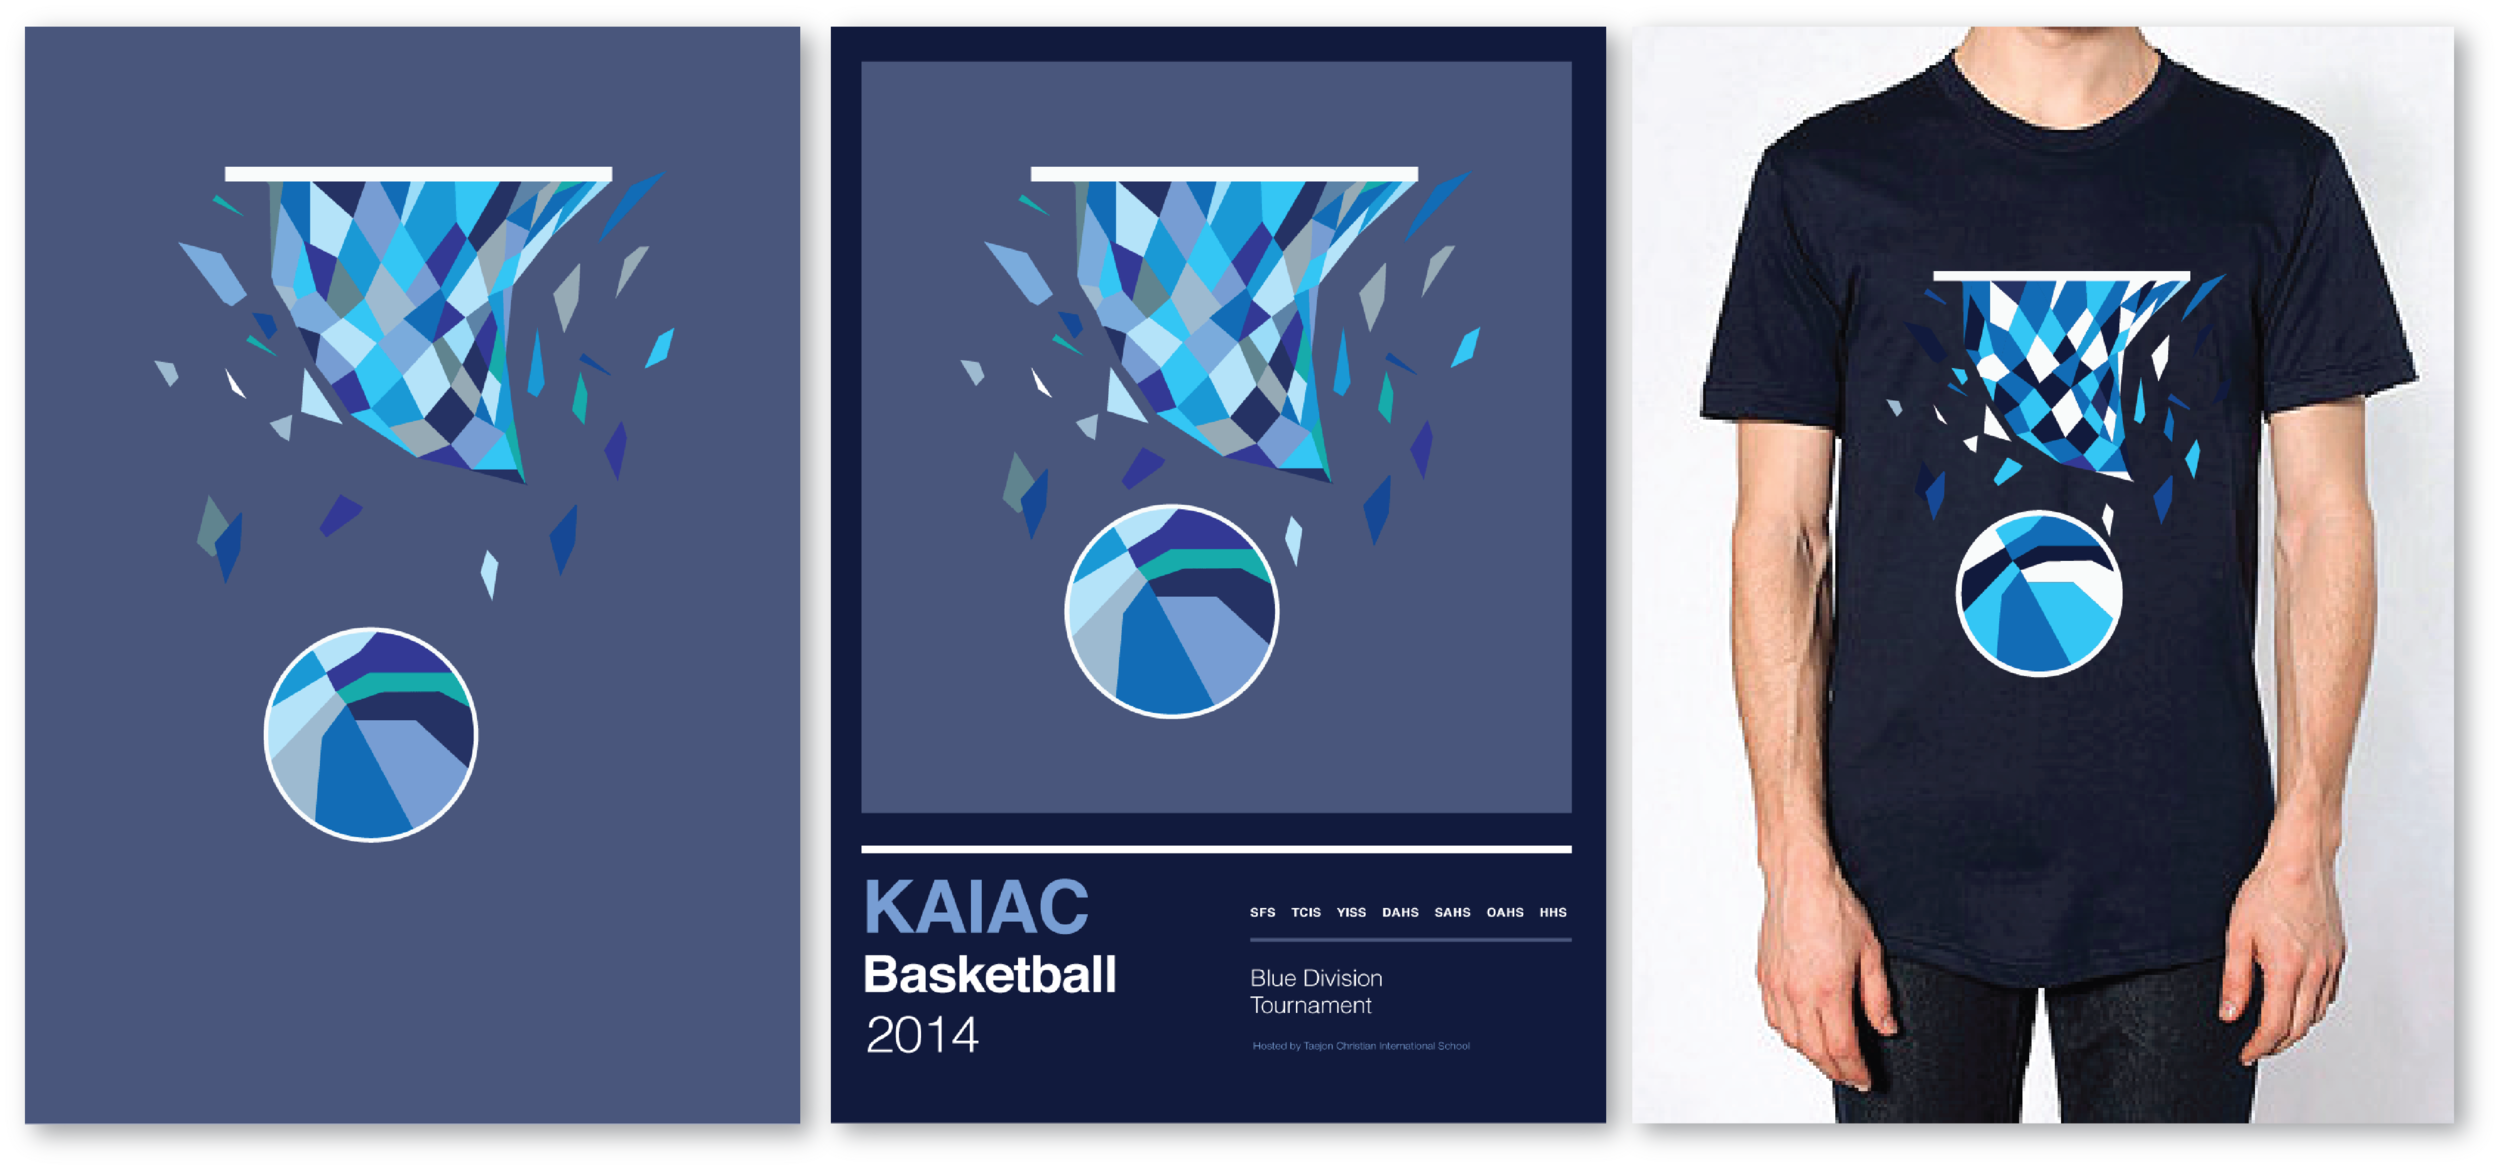 KAIAC Basketball - 2014